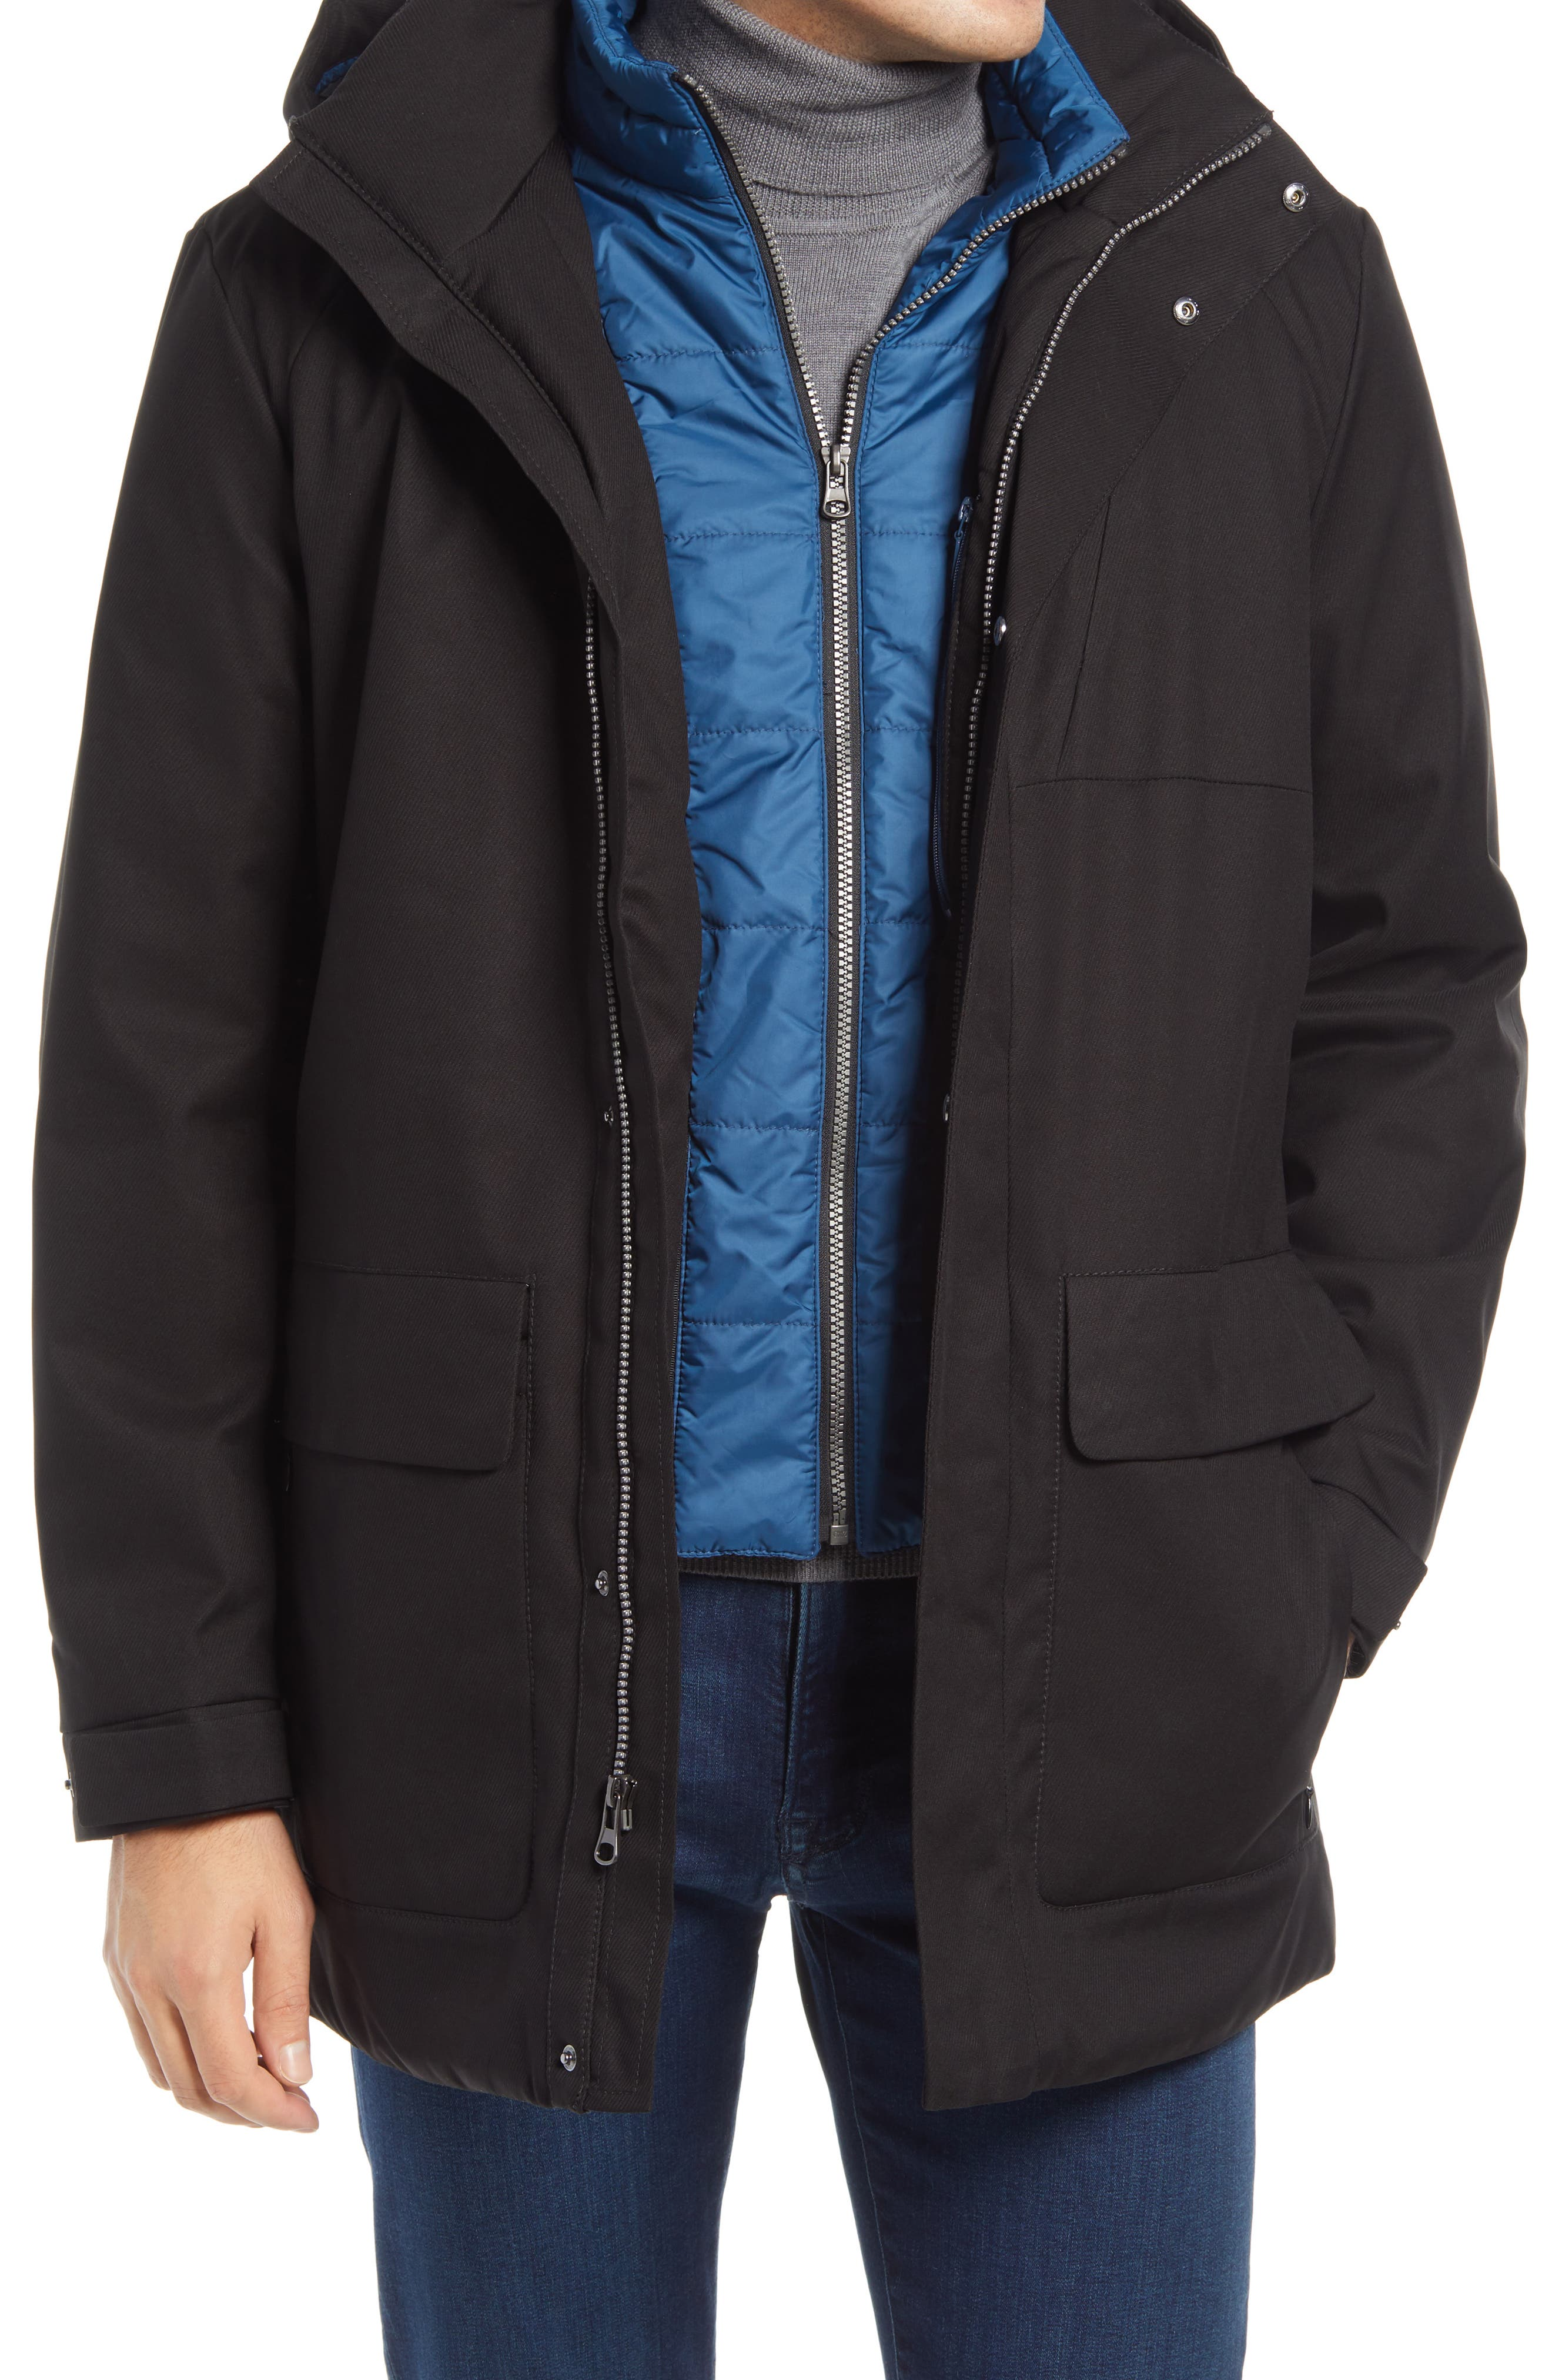 Water-resistant tech fabric means all-weather utility for a stylish jacket with a removable quilted liner for versatile comfort. Style Name: Bugatchi Water Resistant Hooded Parka. Style Number: 6129643. Available in stores.